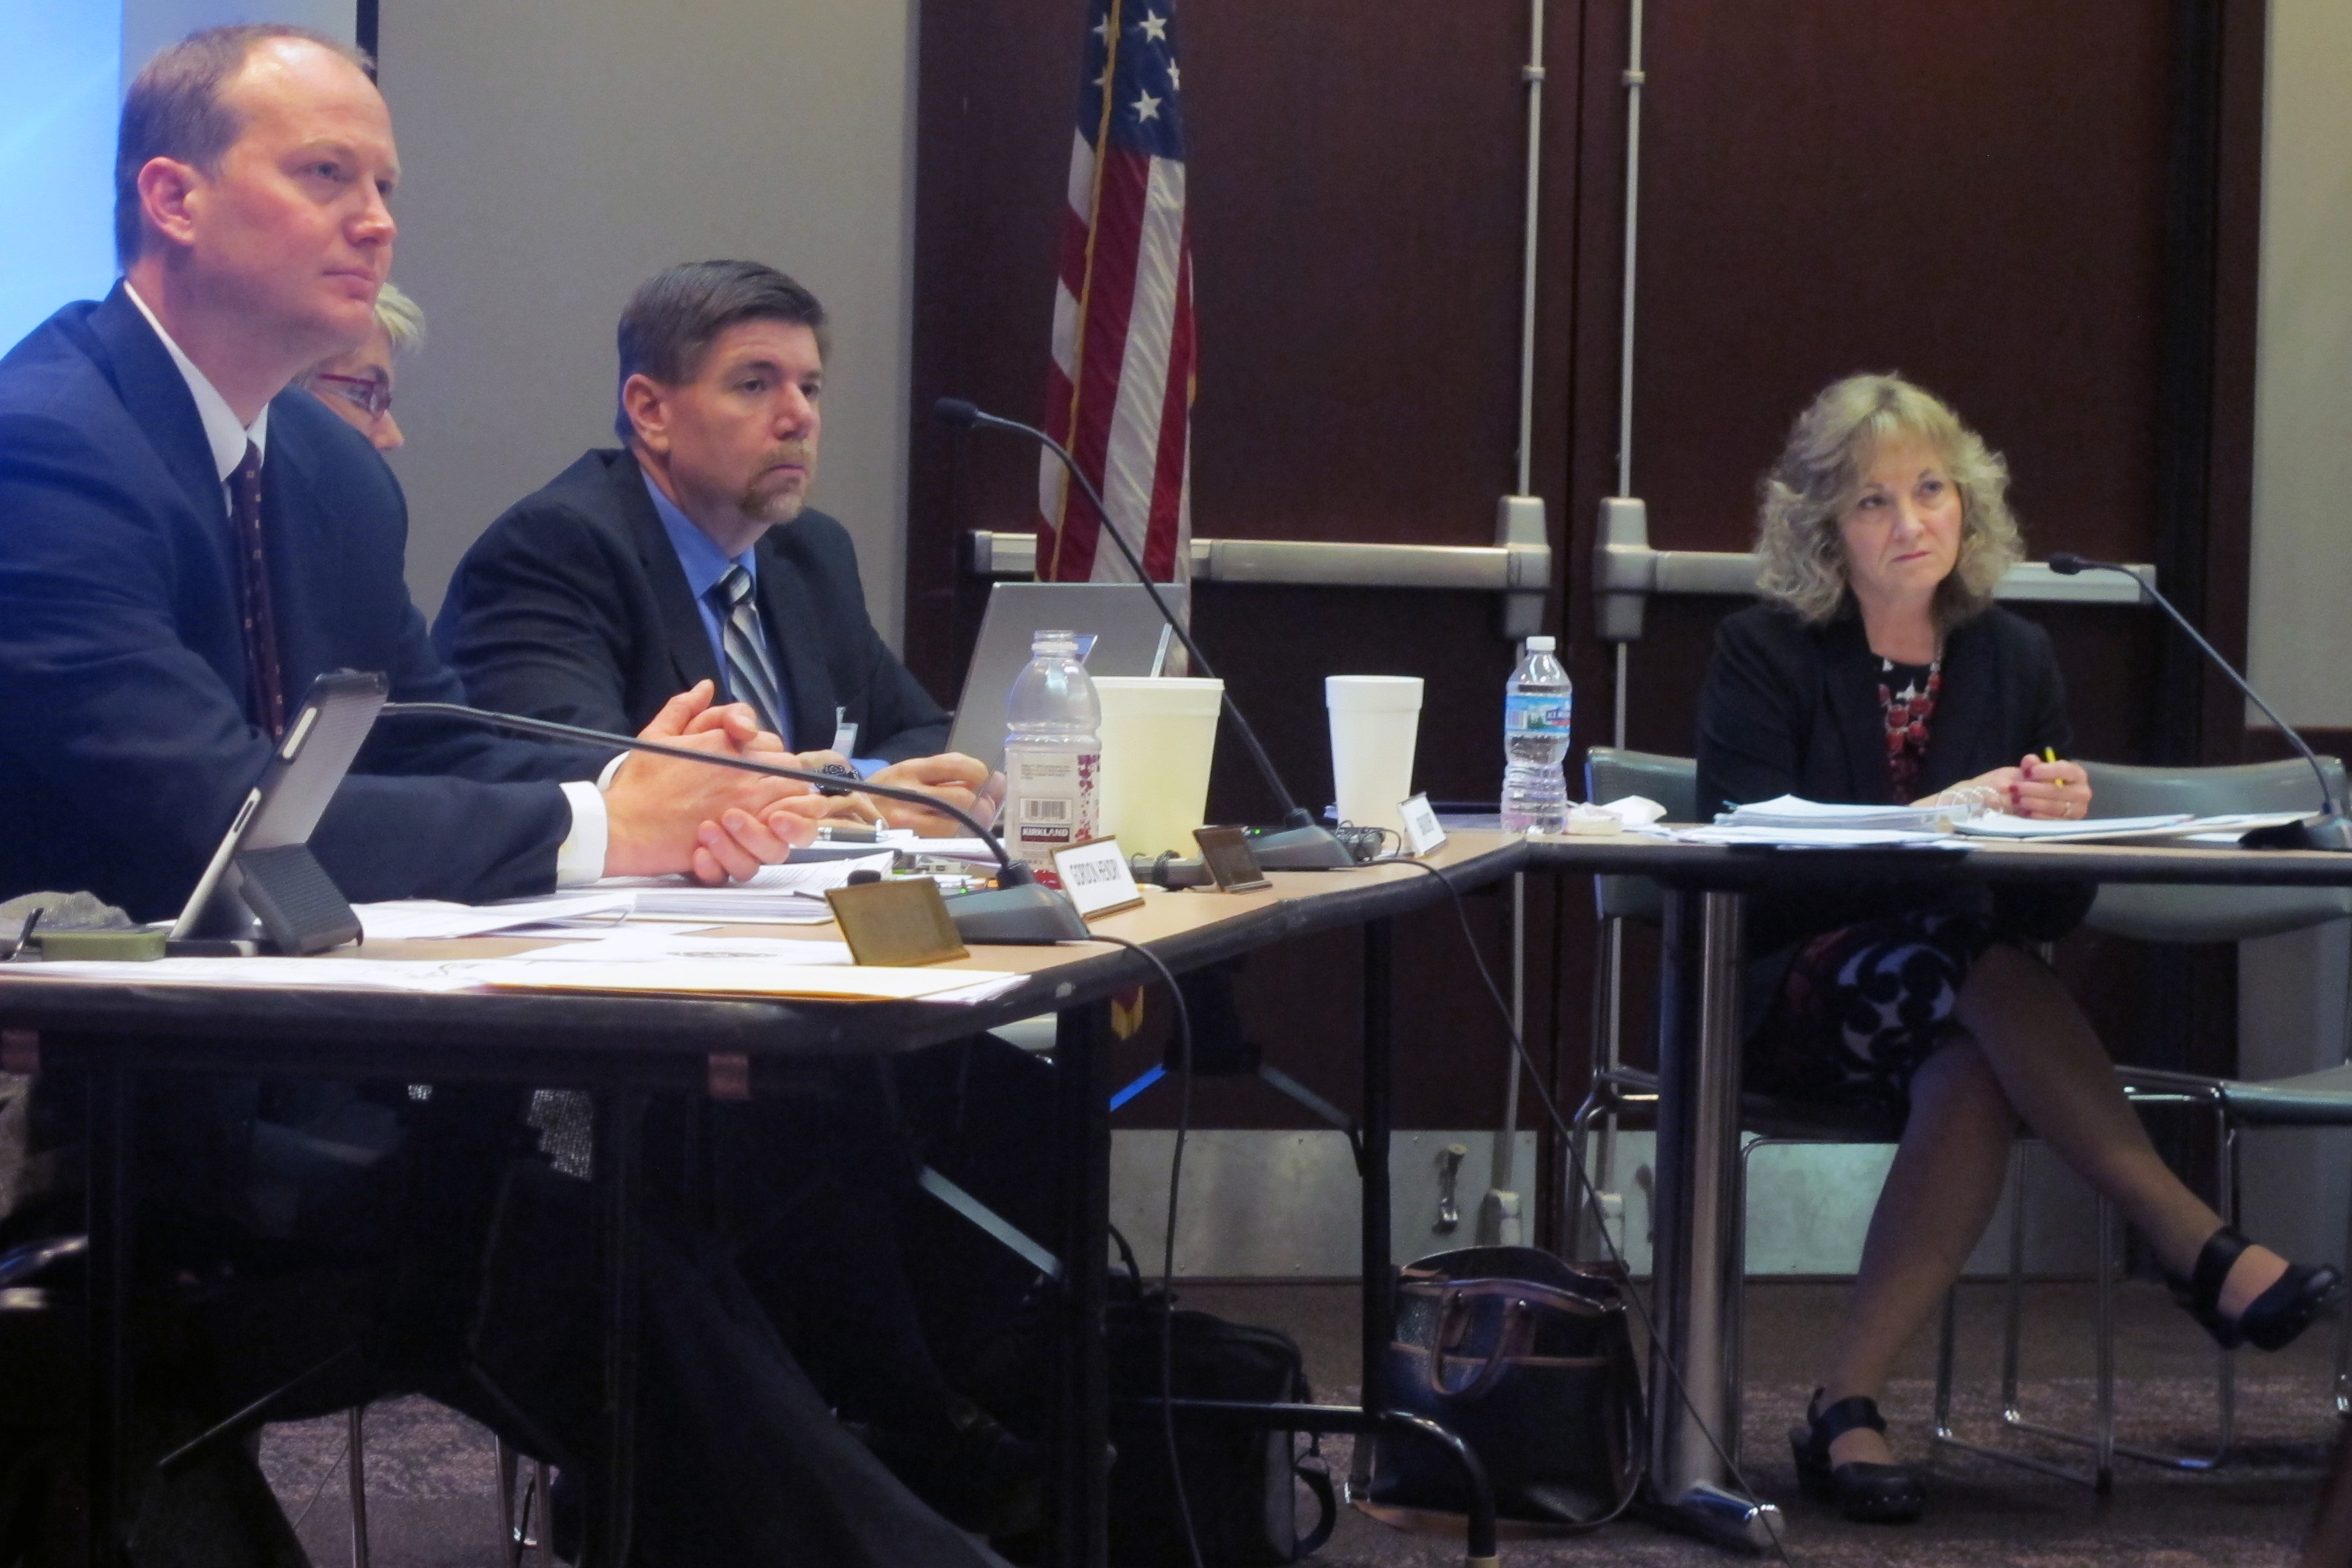 Board members Gordon Hendry, left, Brad Oliver and state superintendent Glenda Ritz listen to a presentation at the November State Board of Education meeting.